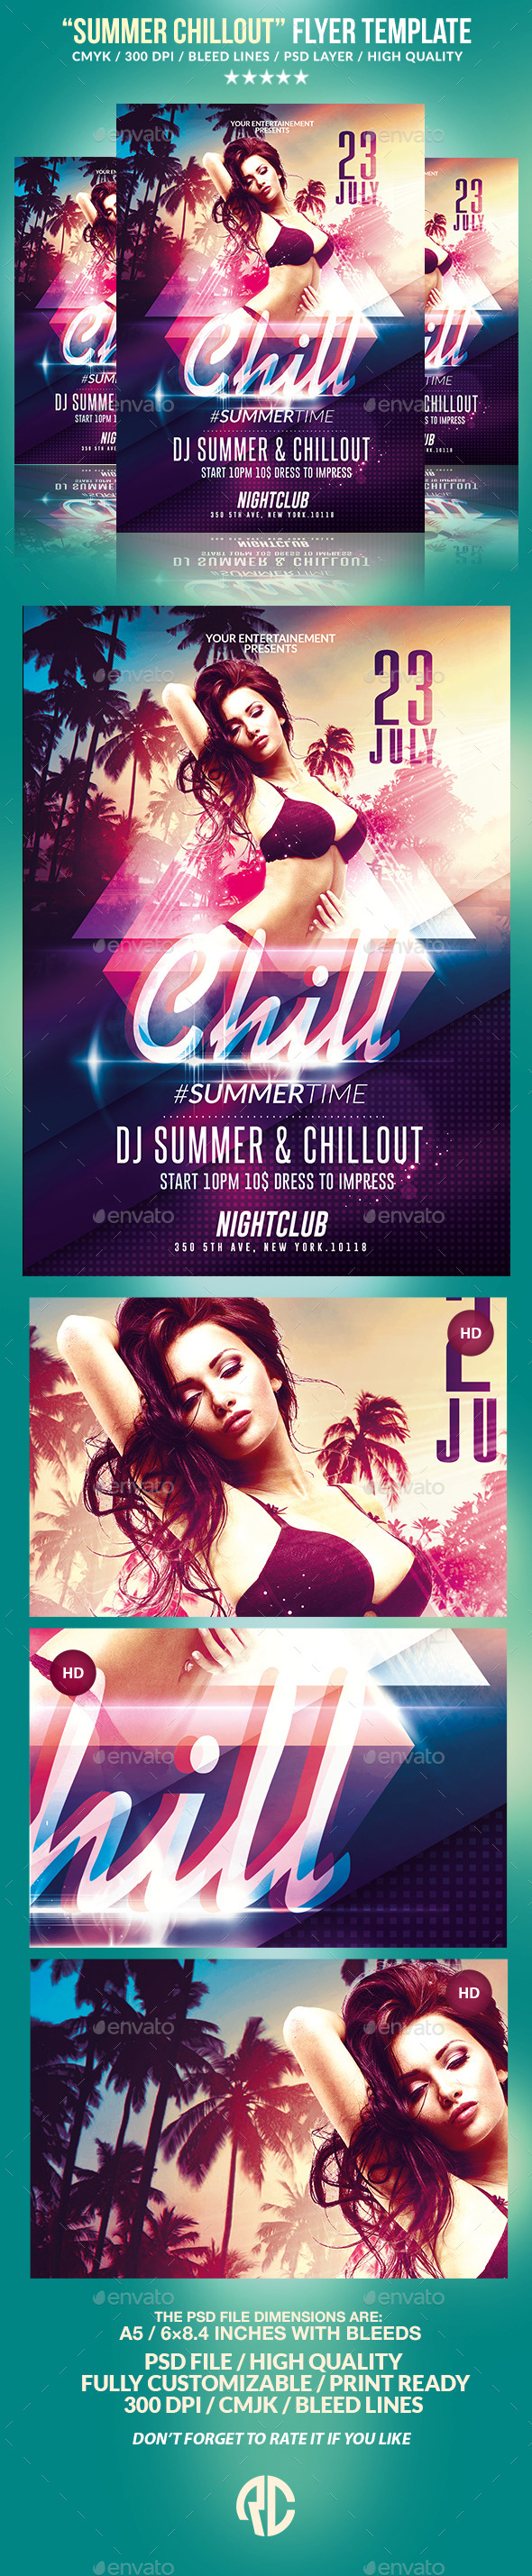 Summer Chillout Party | Psd Flyer Template - Events Flyers